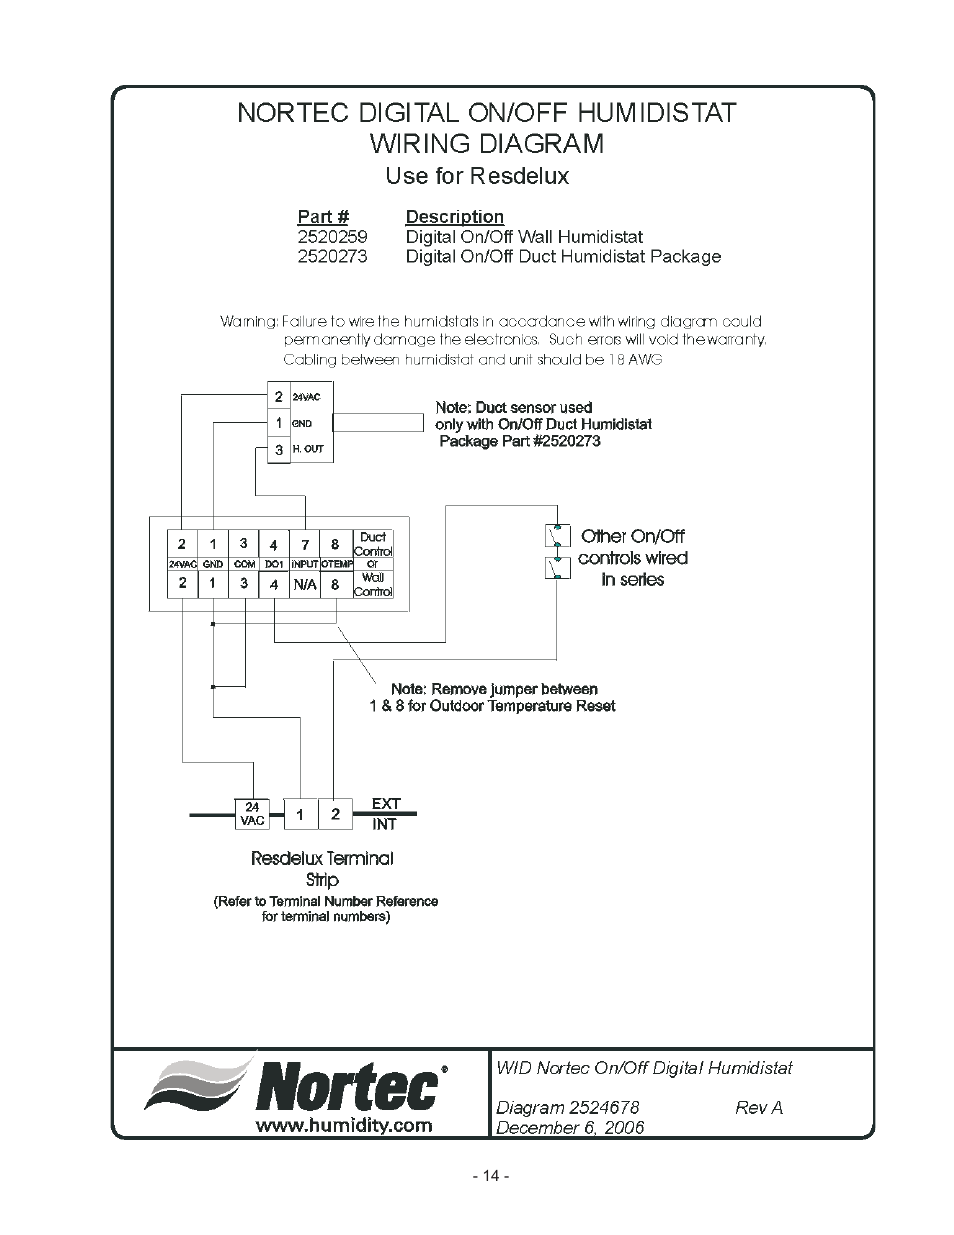 Nortec RESDELUX User Manual   Page 17 / 22   Original mode on